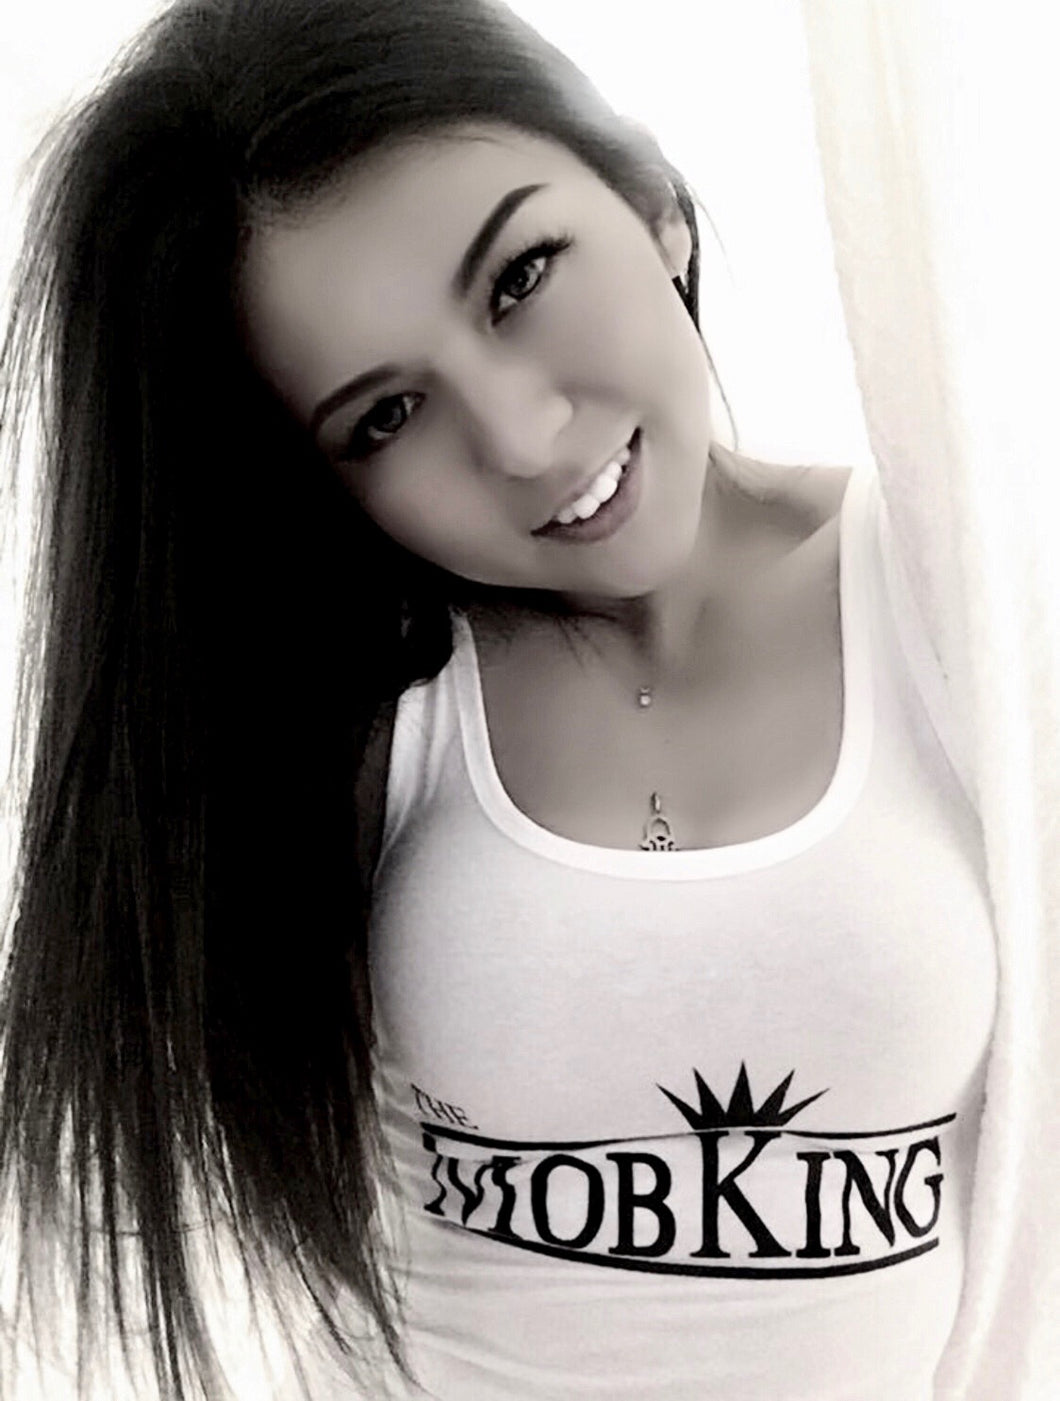 Mob King Girls Tank top